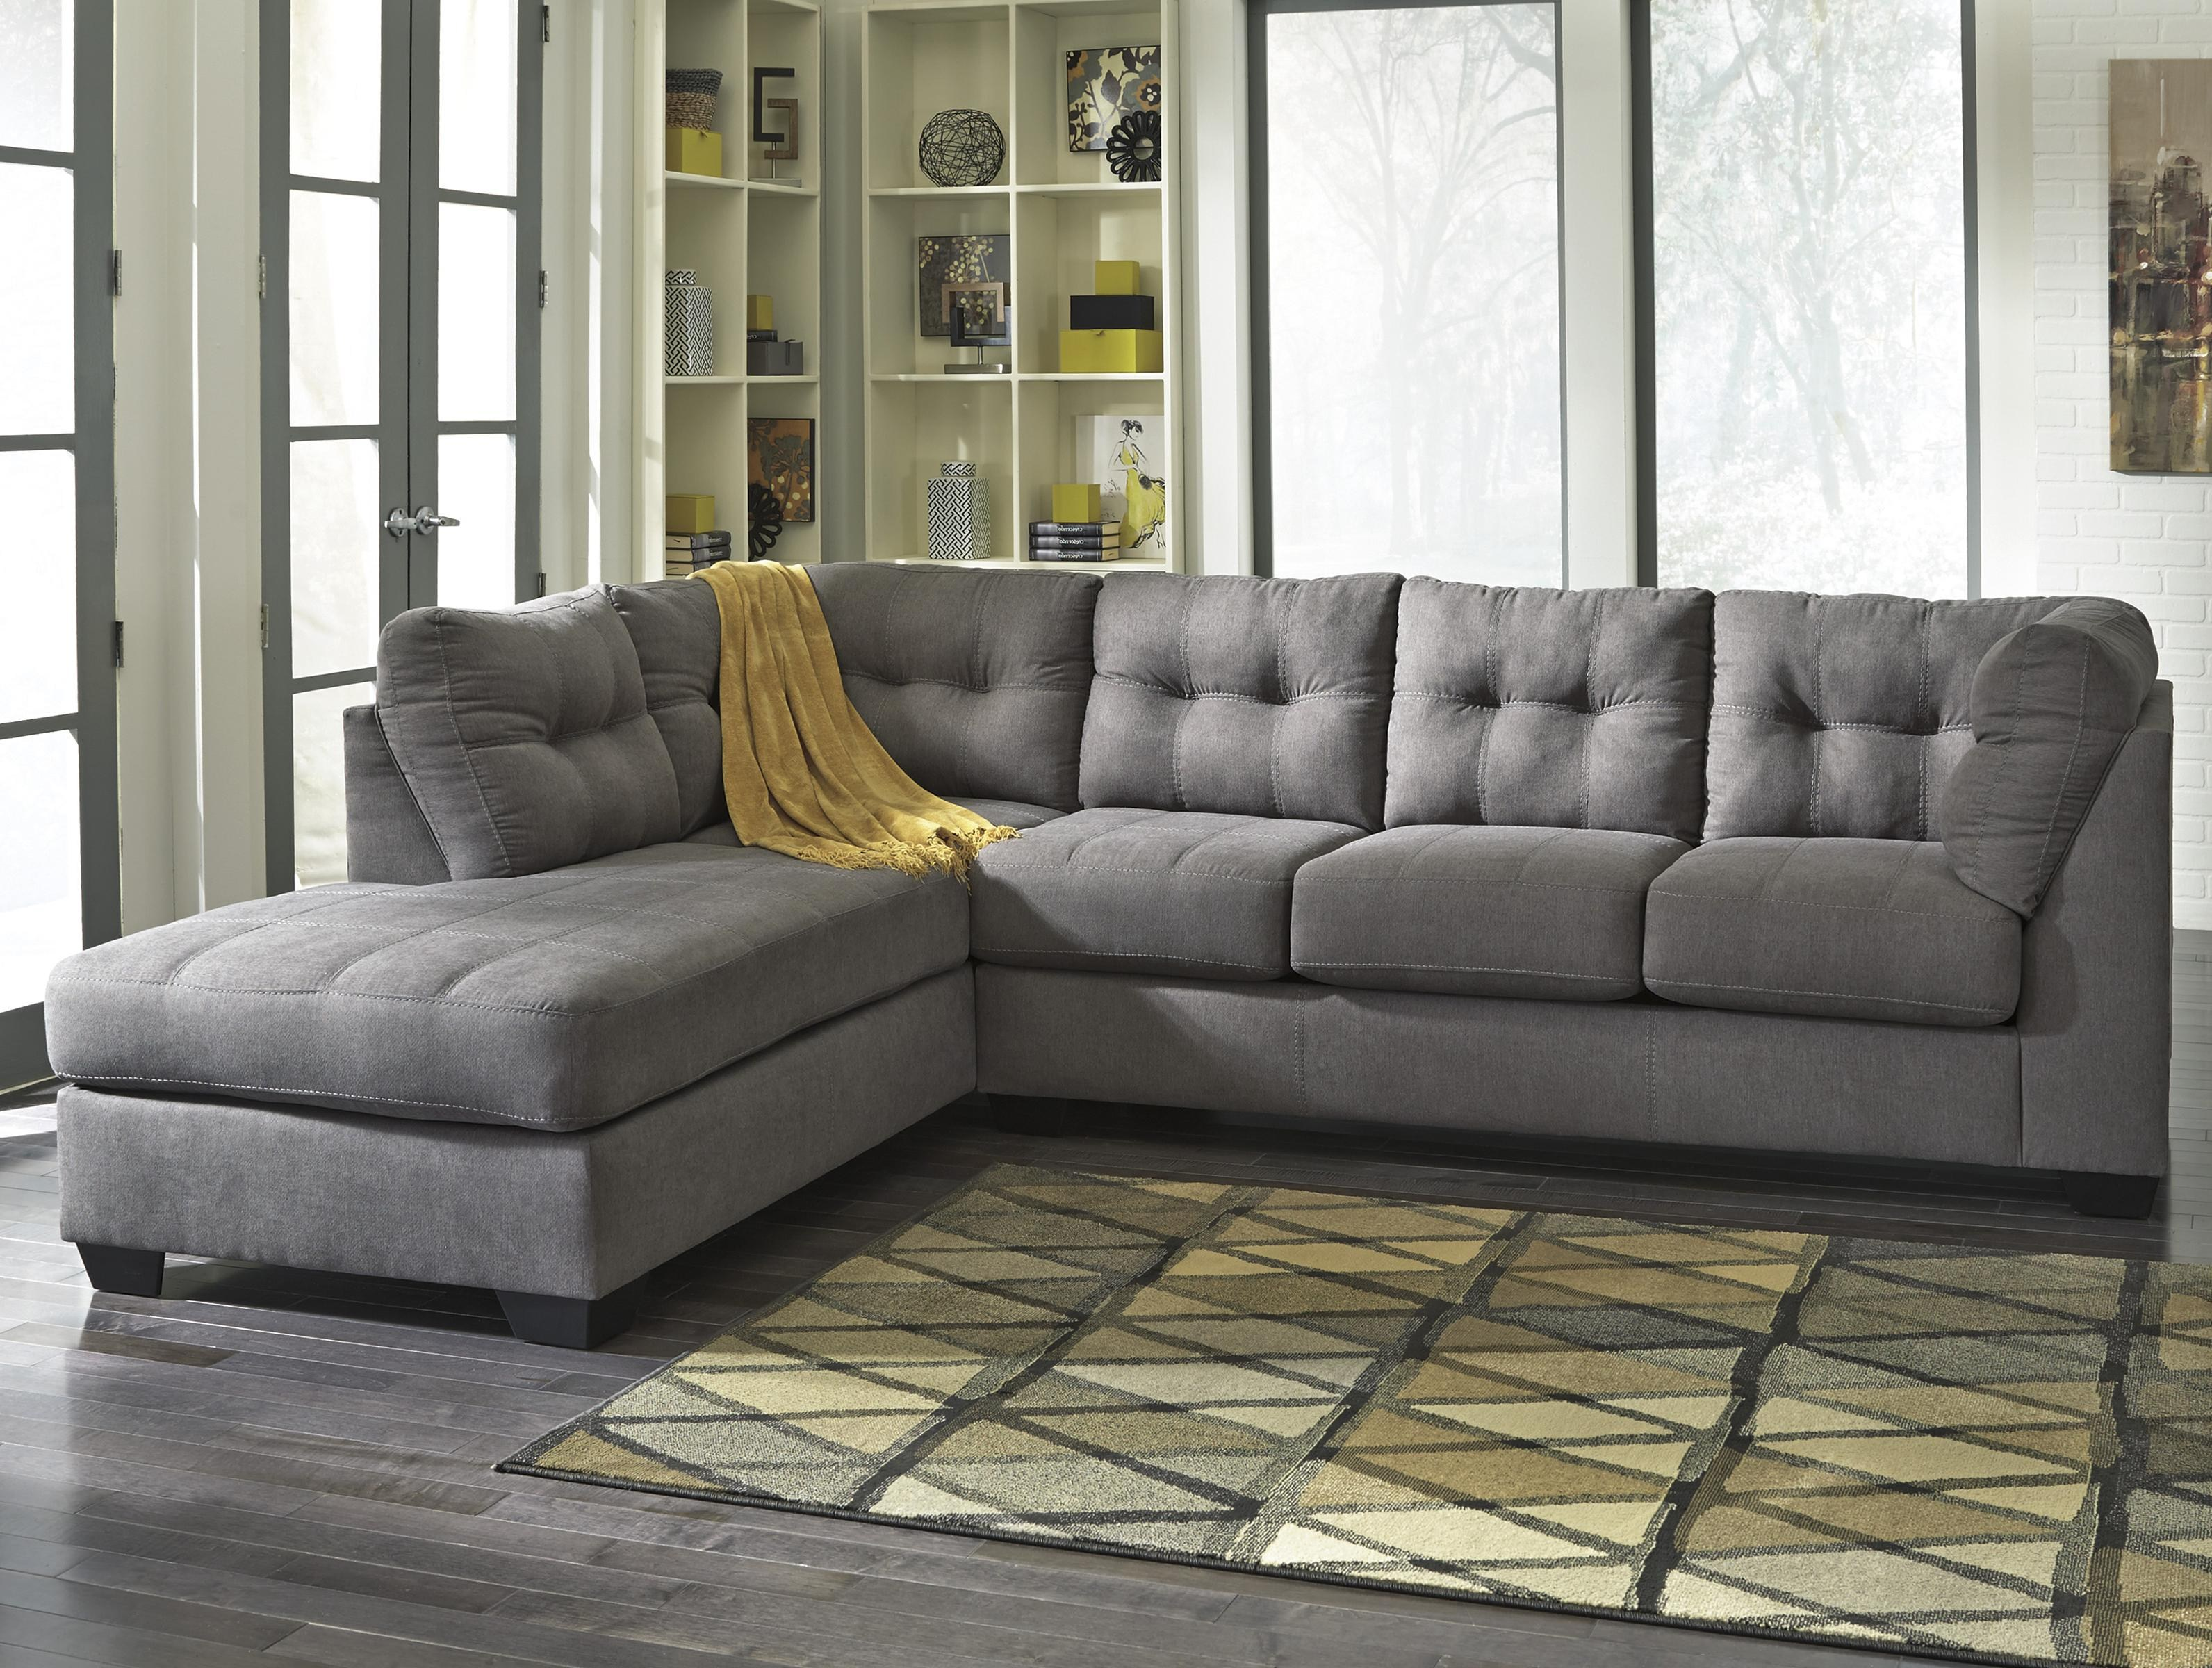 Maier - Charcoal 2-Piece Sectional w/ Sleeper Sofa & Left Chaise by  Benchcraft